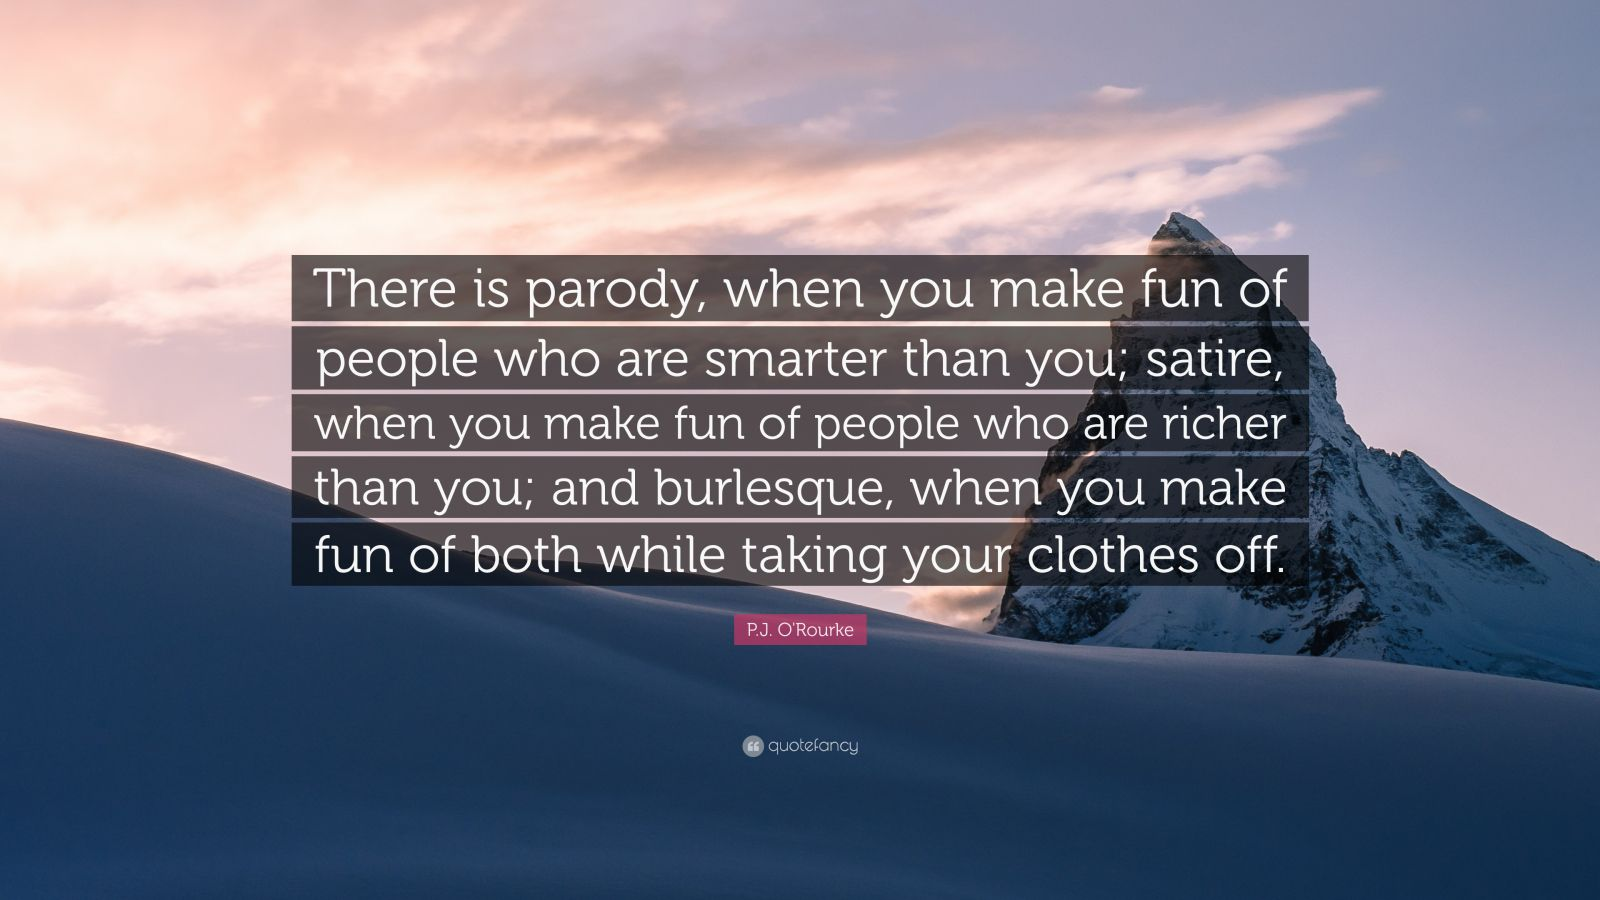 "P.J. O'Rourke Quote: ""There is parody, when you make fun of people who are smarter than you; satire, when you make fun of people who are richer than you; and burlesque, when you make fun of both while taking your clothes off."""